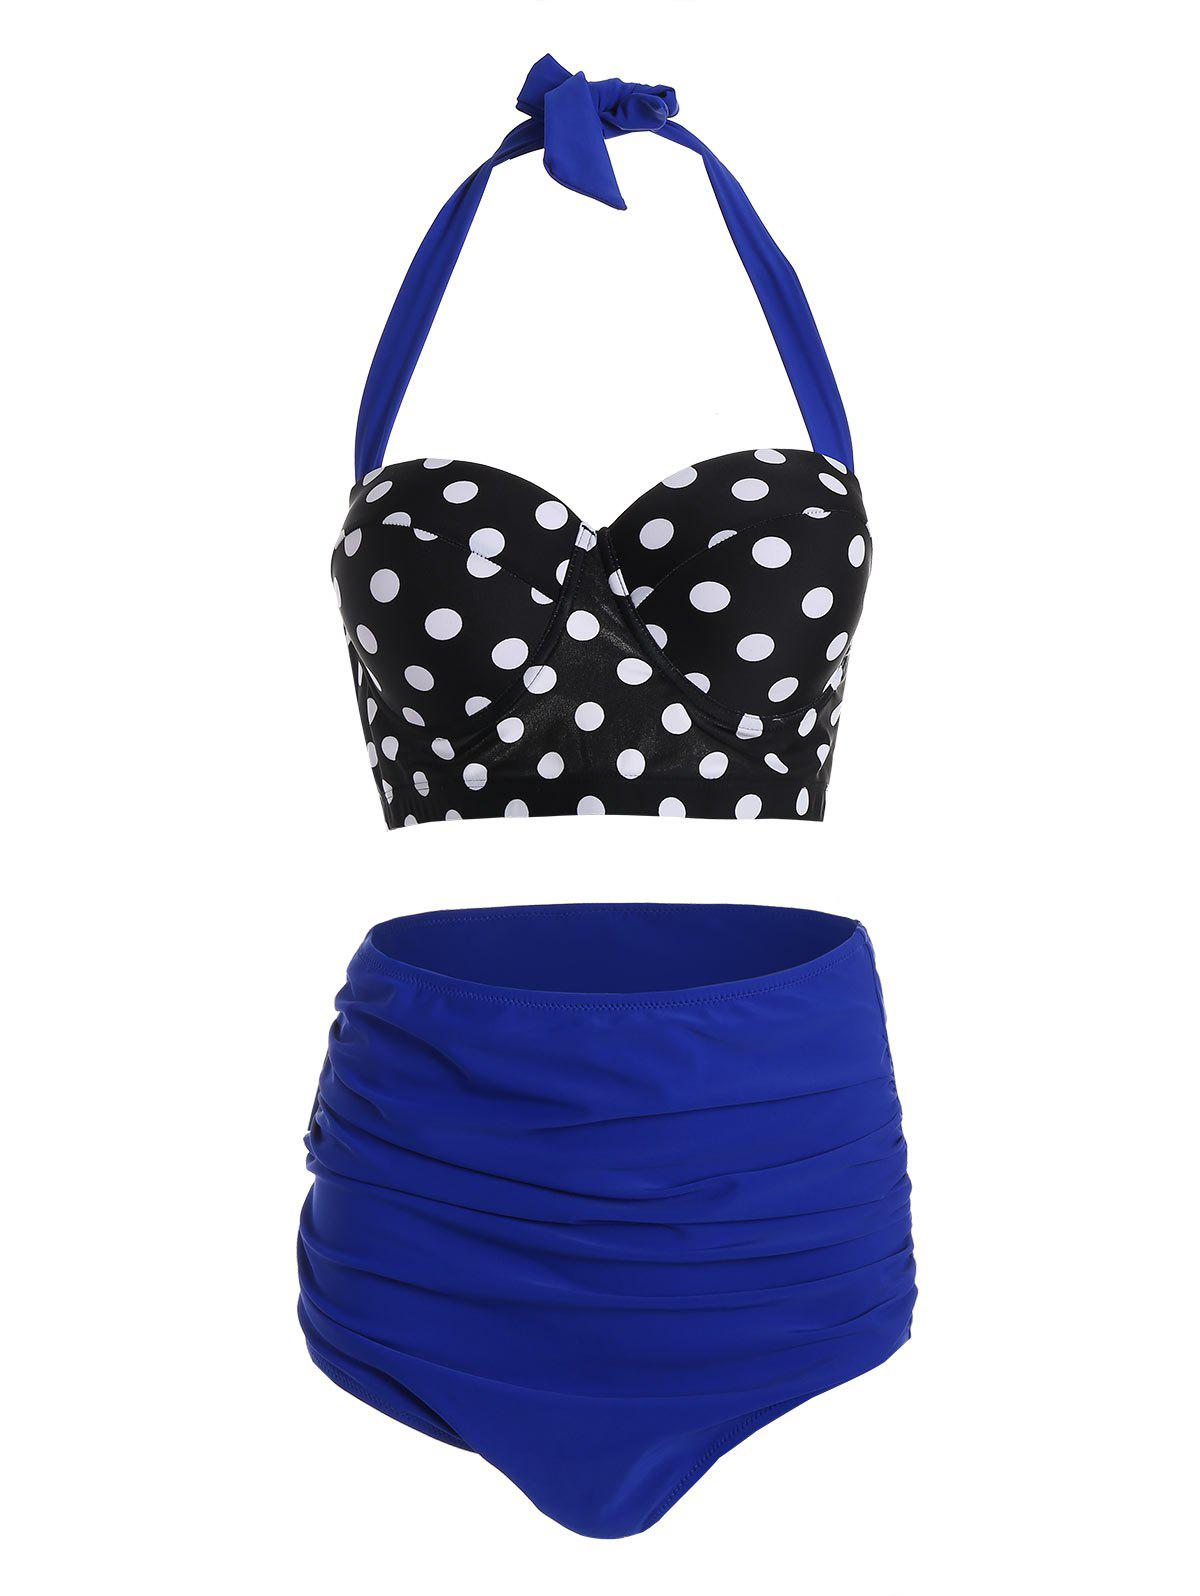 Maillot De Bain Bikini Push Up Licou Pin Up Grande Taille à Pois - Bleu 3XL